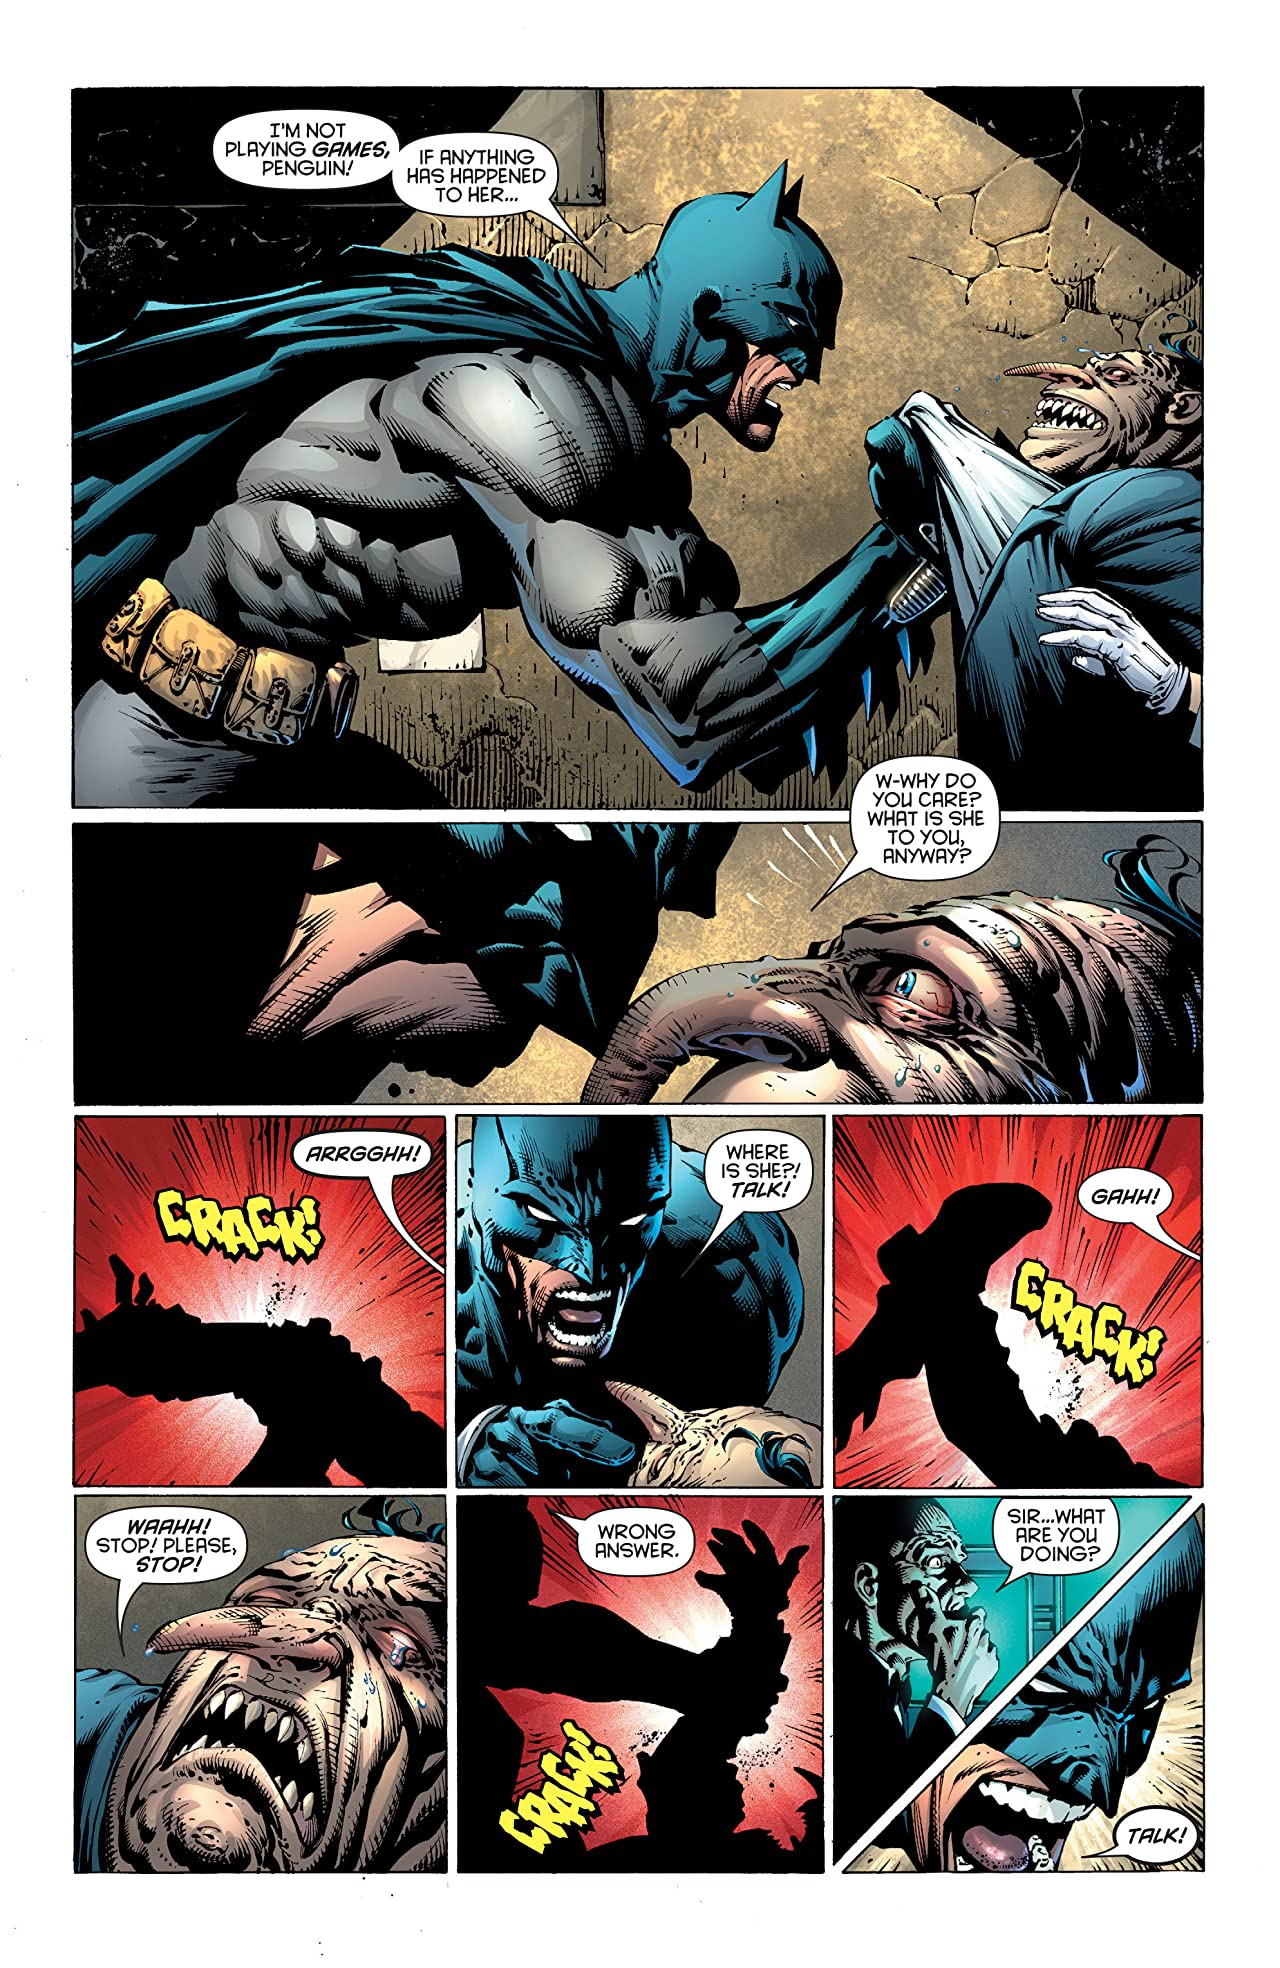 Batman: The Dark Knight (2010) #2